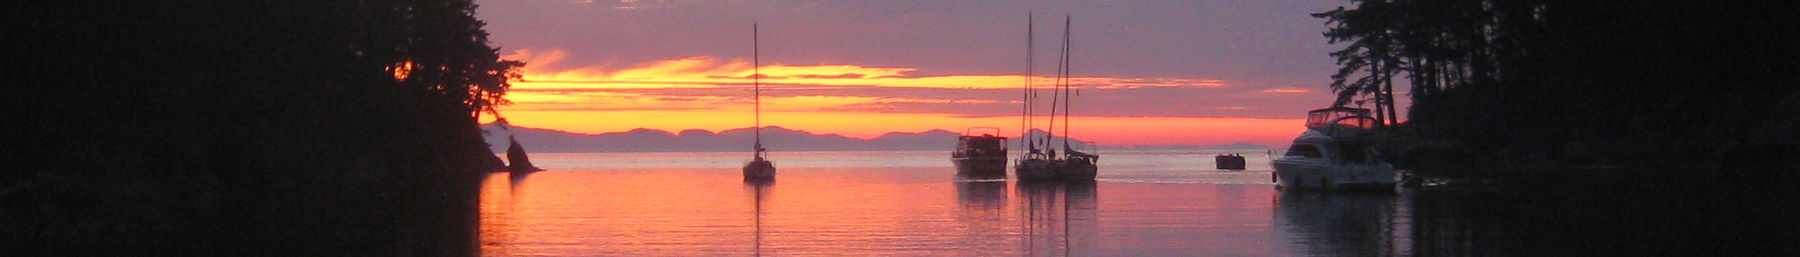 sailboats at sunset in the San Juan Islands of Washington State